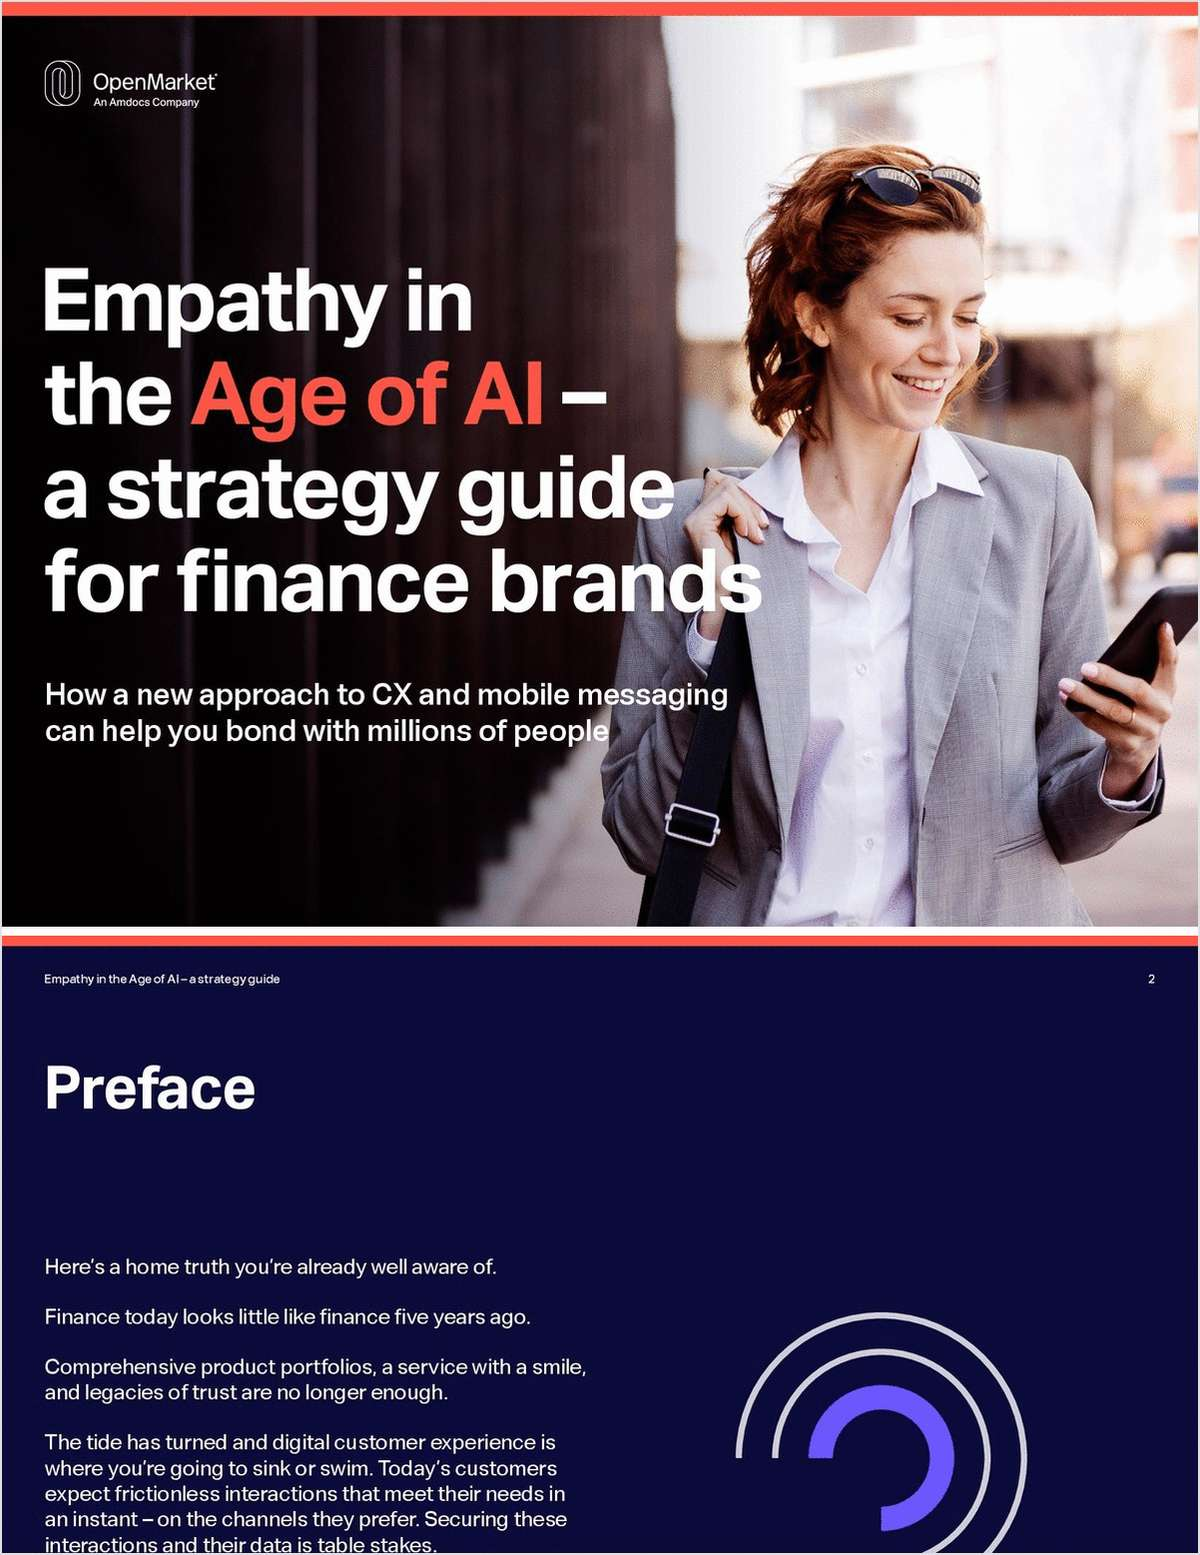 Mobile Messaging and CX for Finance Brands -- A Strategy Guide